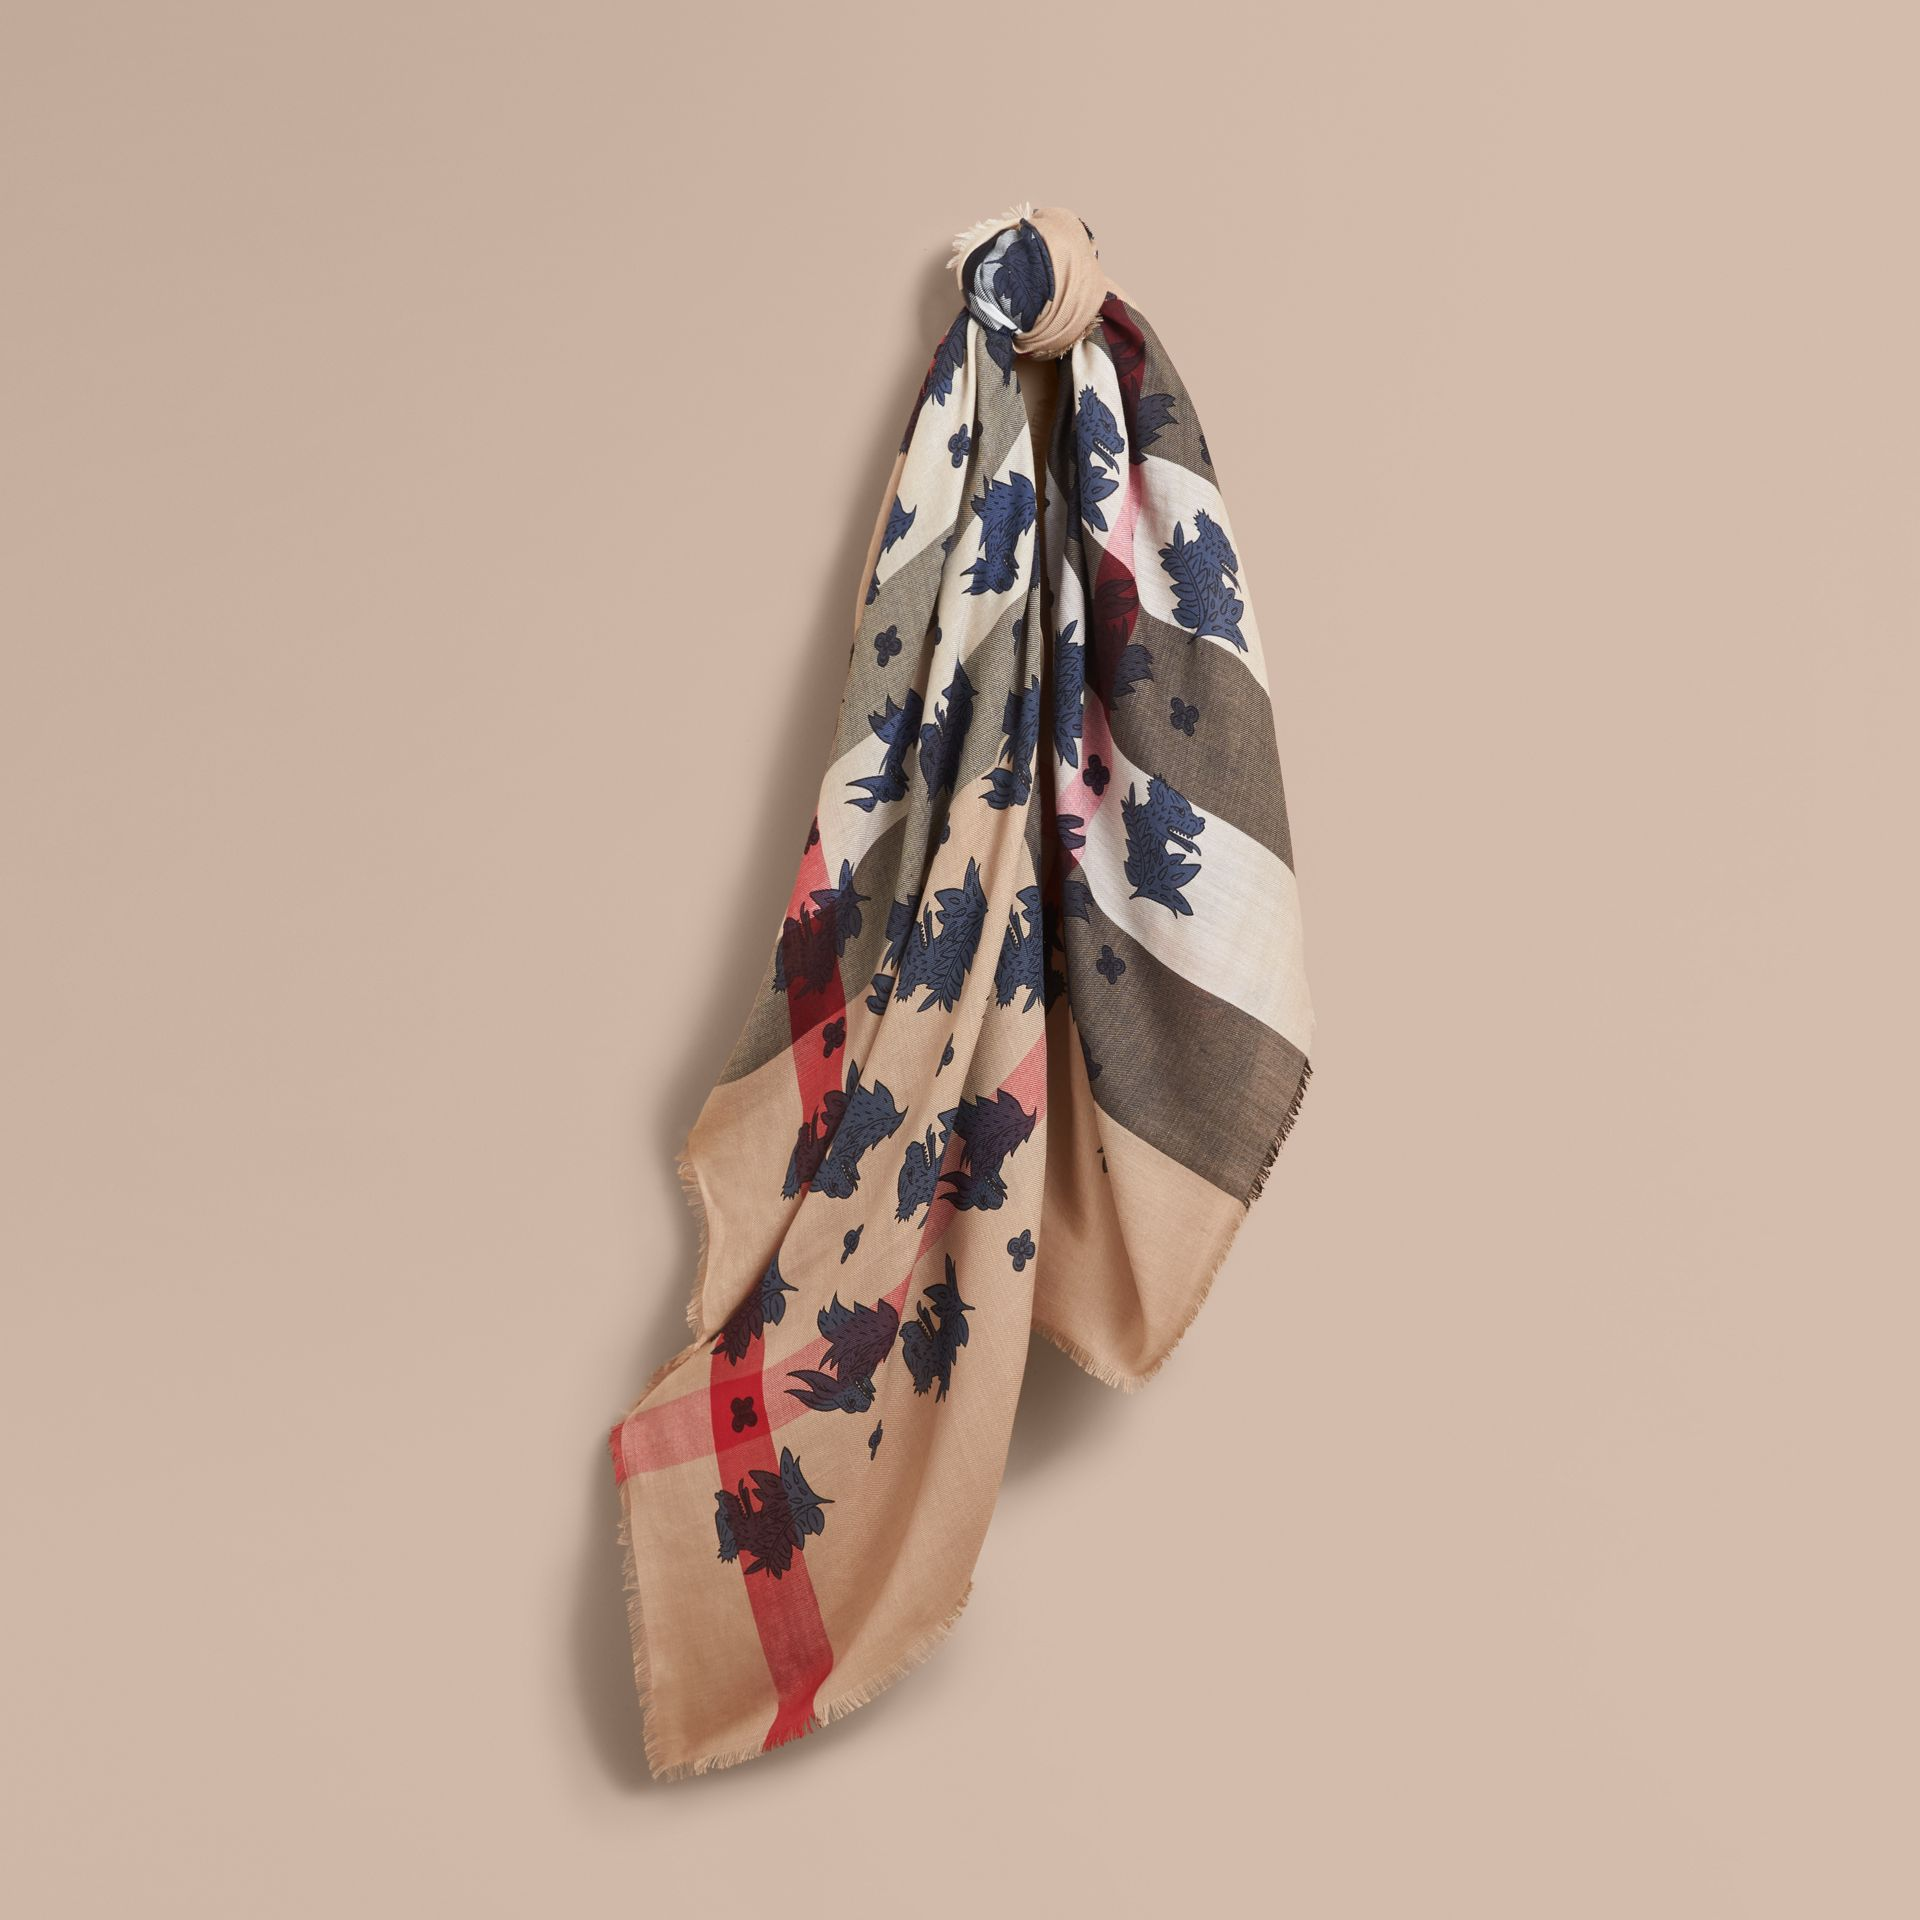 Beasts Print and Check Silk Wool Blend Square Scarf in Camel/stone Blue - Men | Burberry - gallery image 1